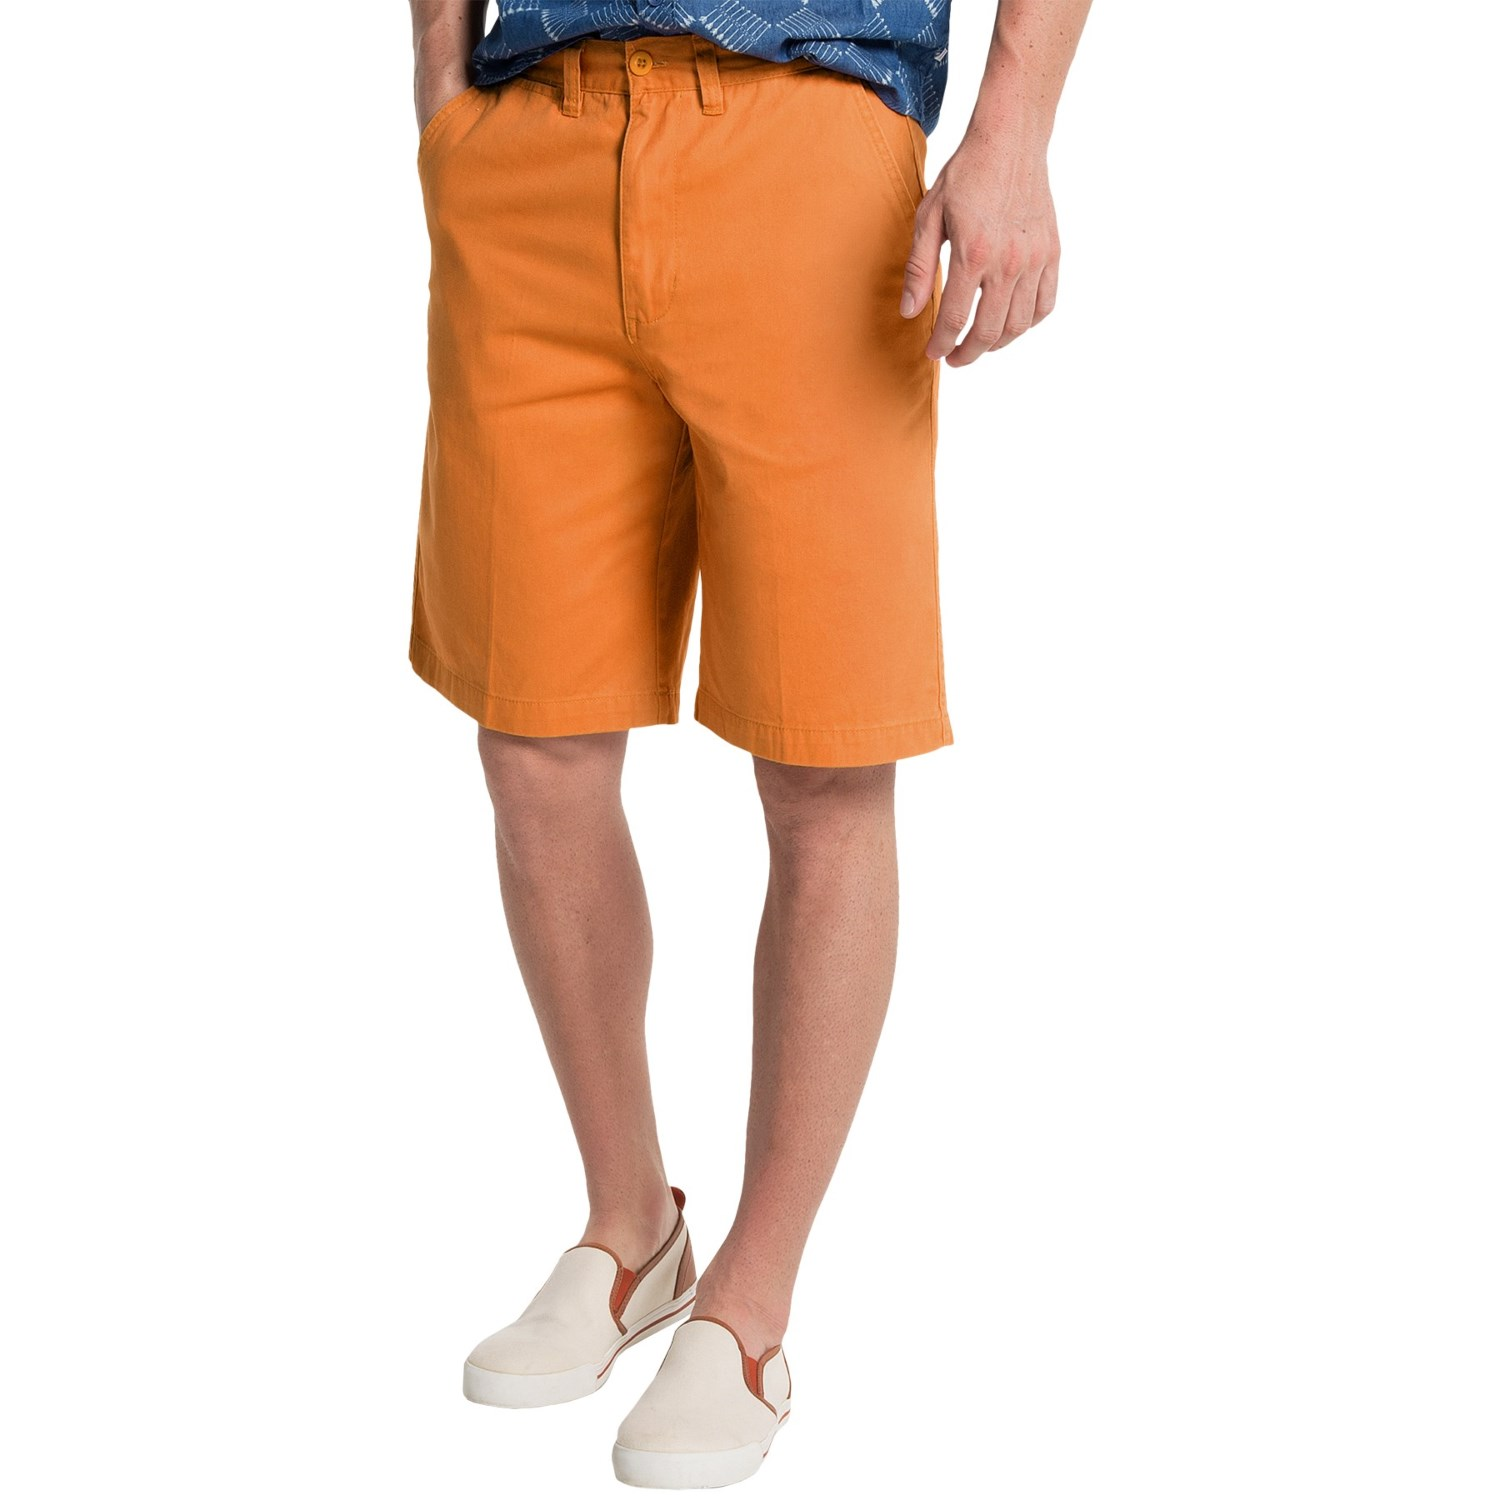 Visitor Cotton Shorts (For Men) - Save 91%